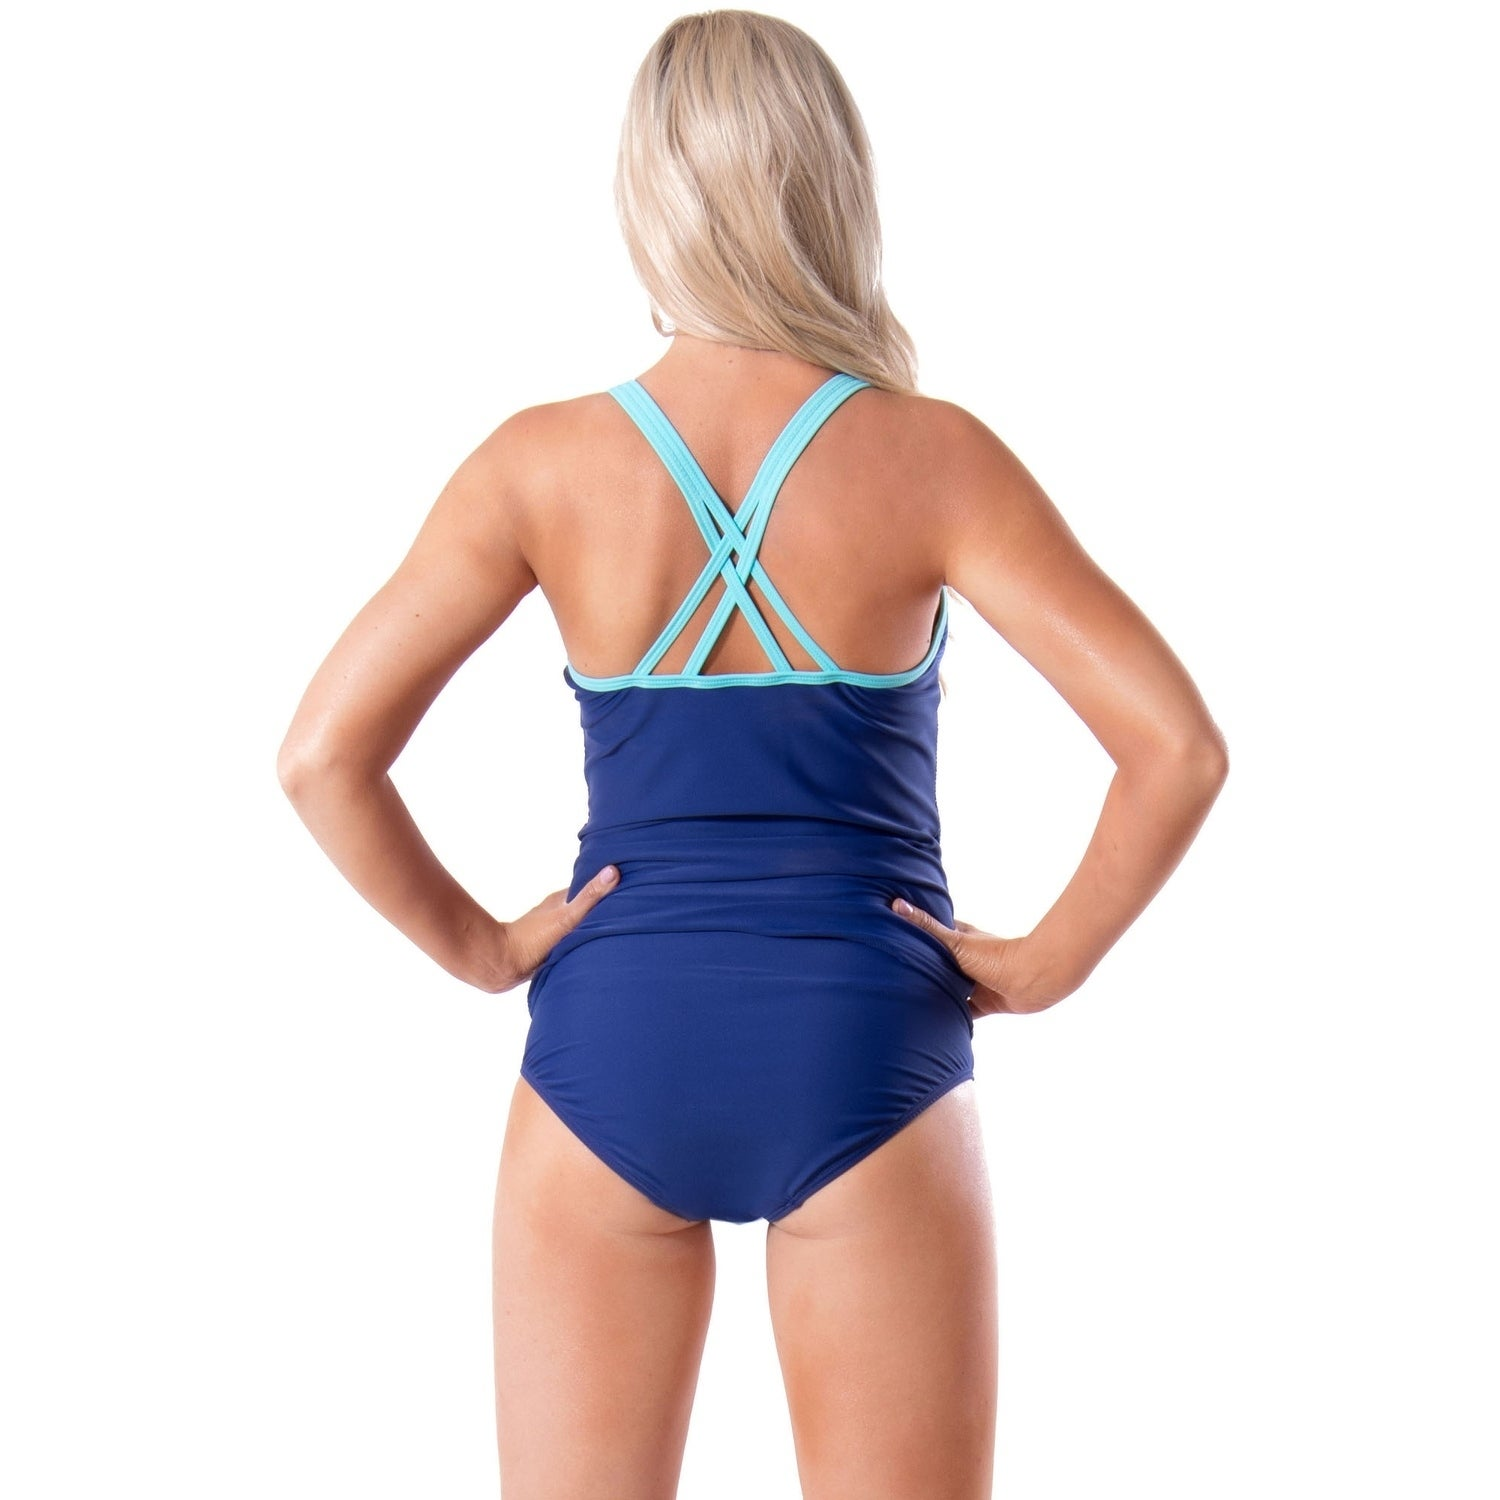 04b205397efda Shop Bawdy Women's Active Sport Tankini Set - On Sale - Ships To Canada - -  17638770